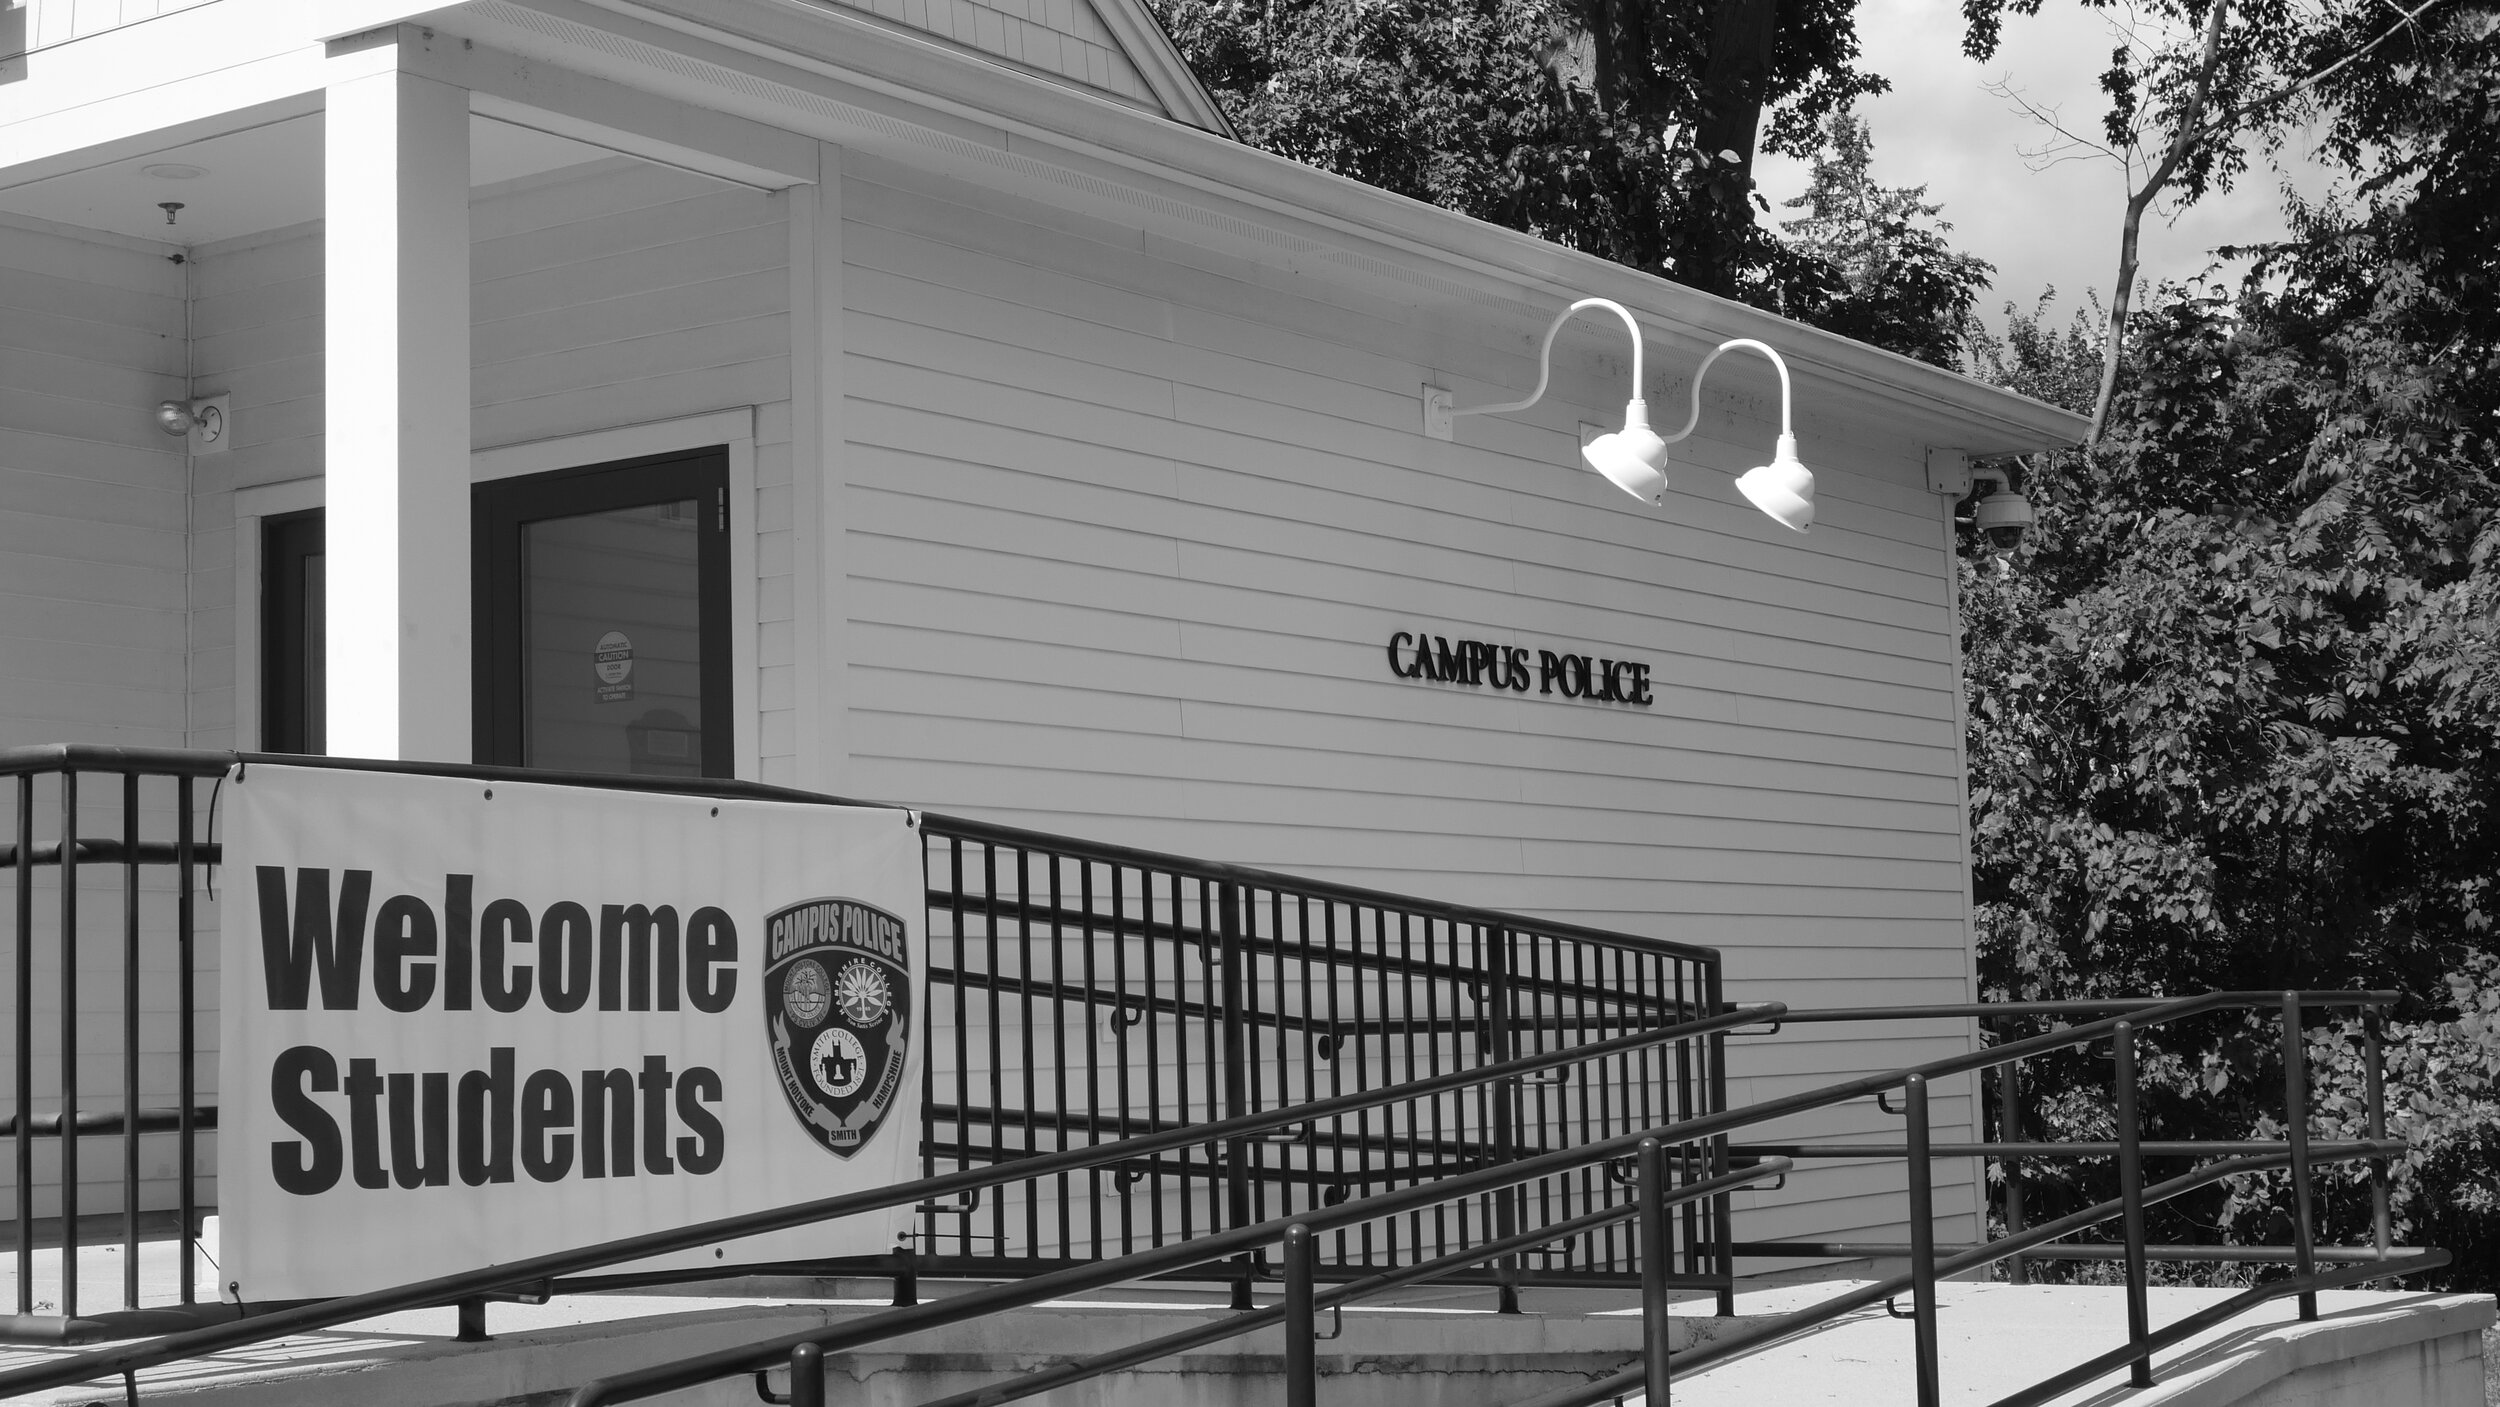 Photo by Trinity Kendrick '21  The Mount Holyoke Campus Police department plans to separate from Smith's by July 2020, moving directly under Mount Holyoke's Division of Student Life.